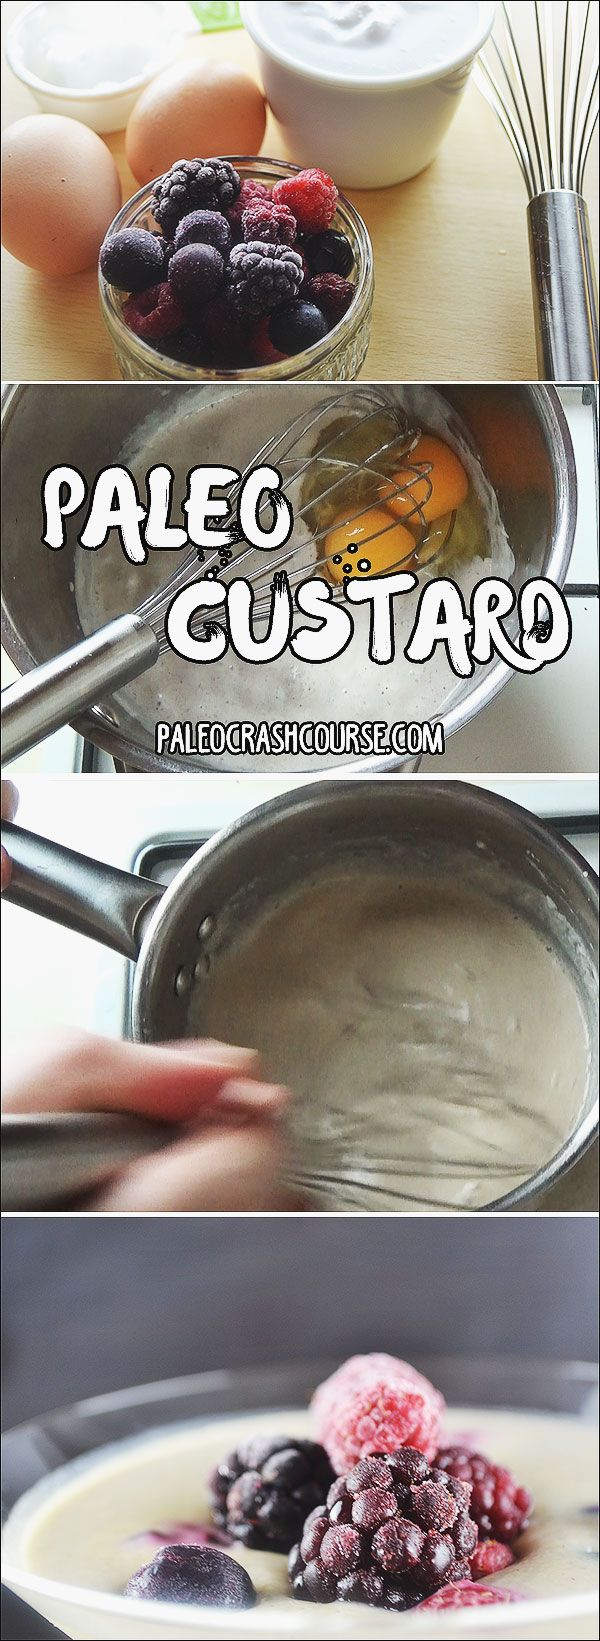 A yummy paleo custard recipe that makes for a great dessert or even breakfast!   http://paleocrashcourse.com/paleo-custard/